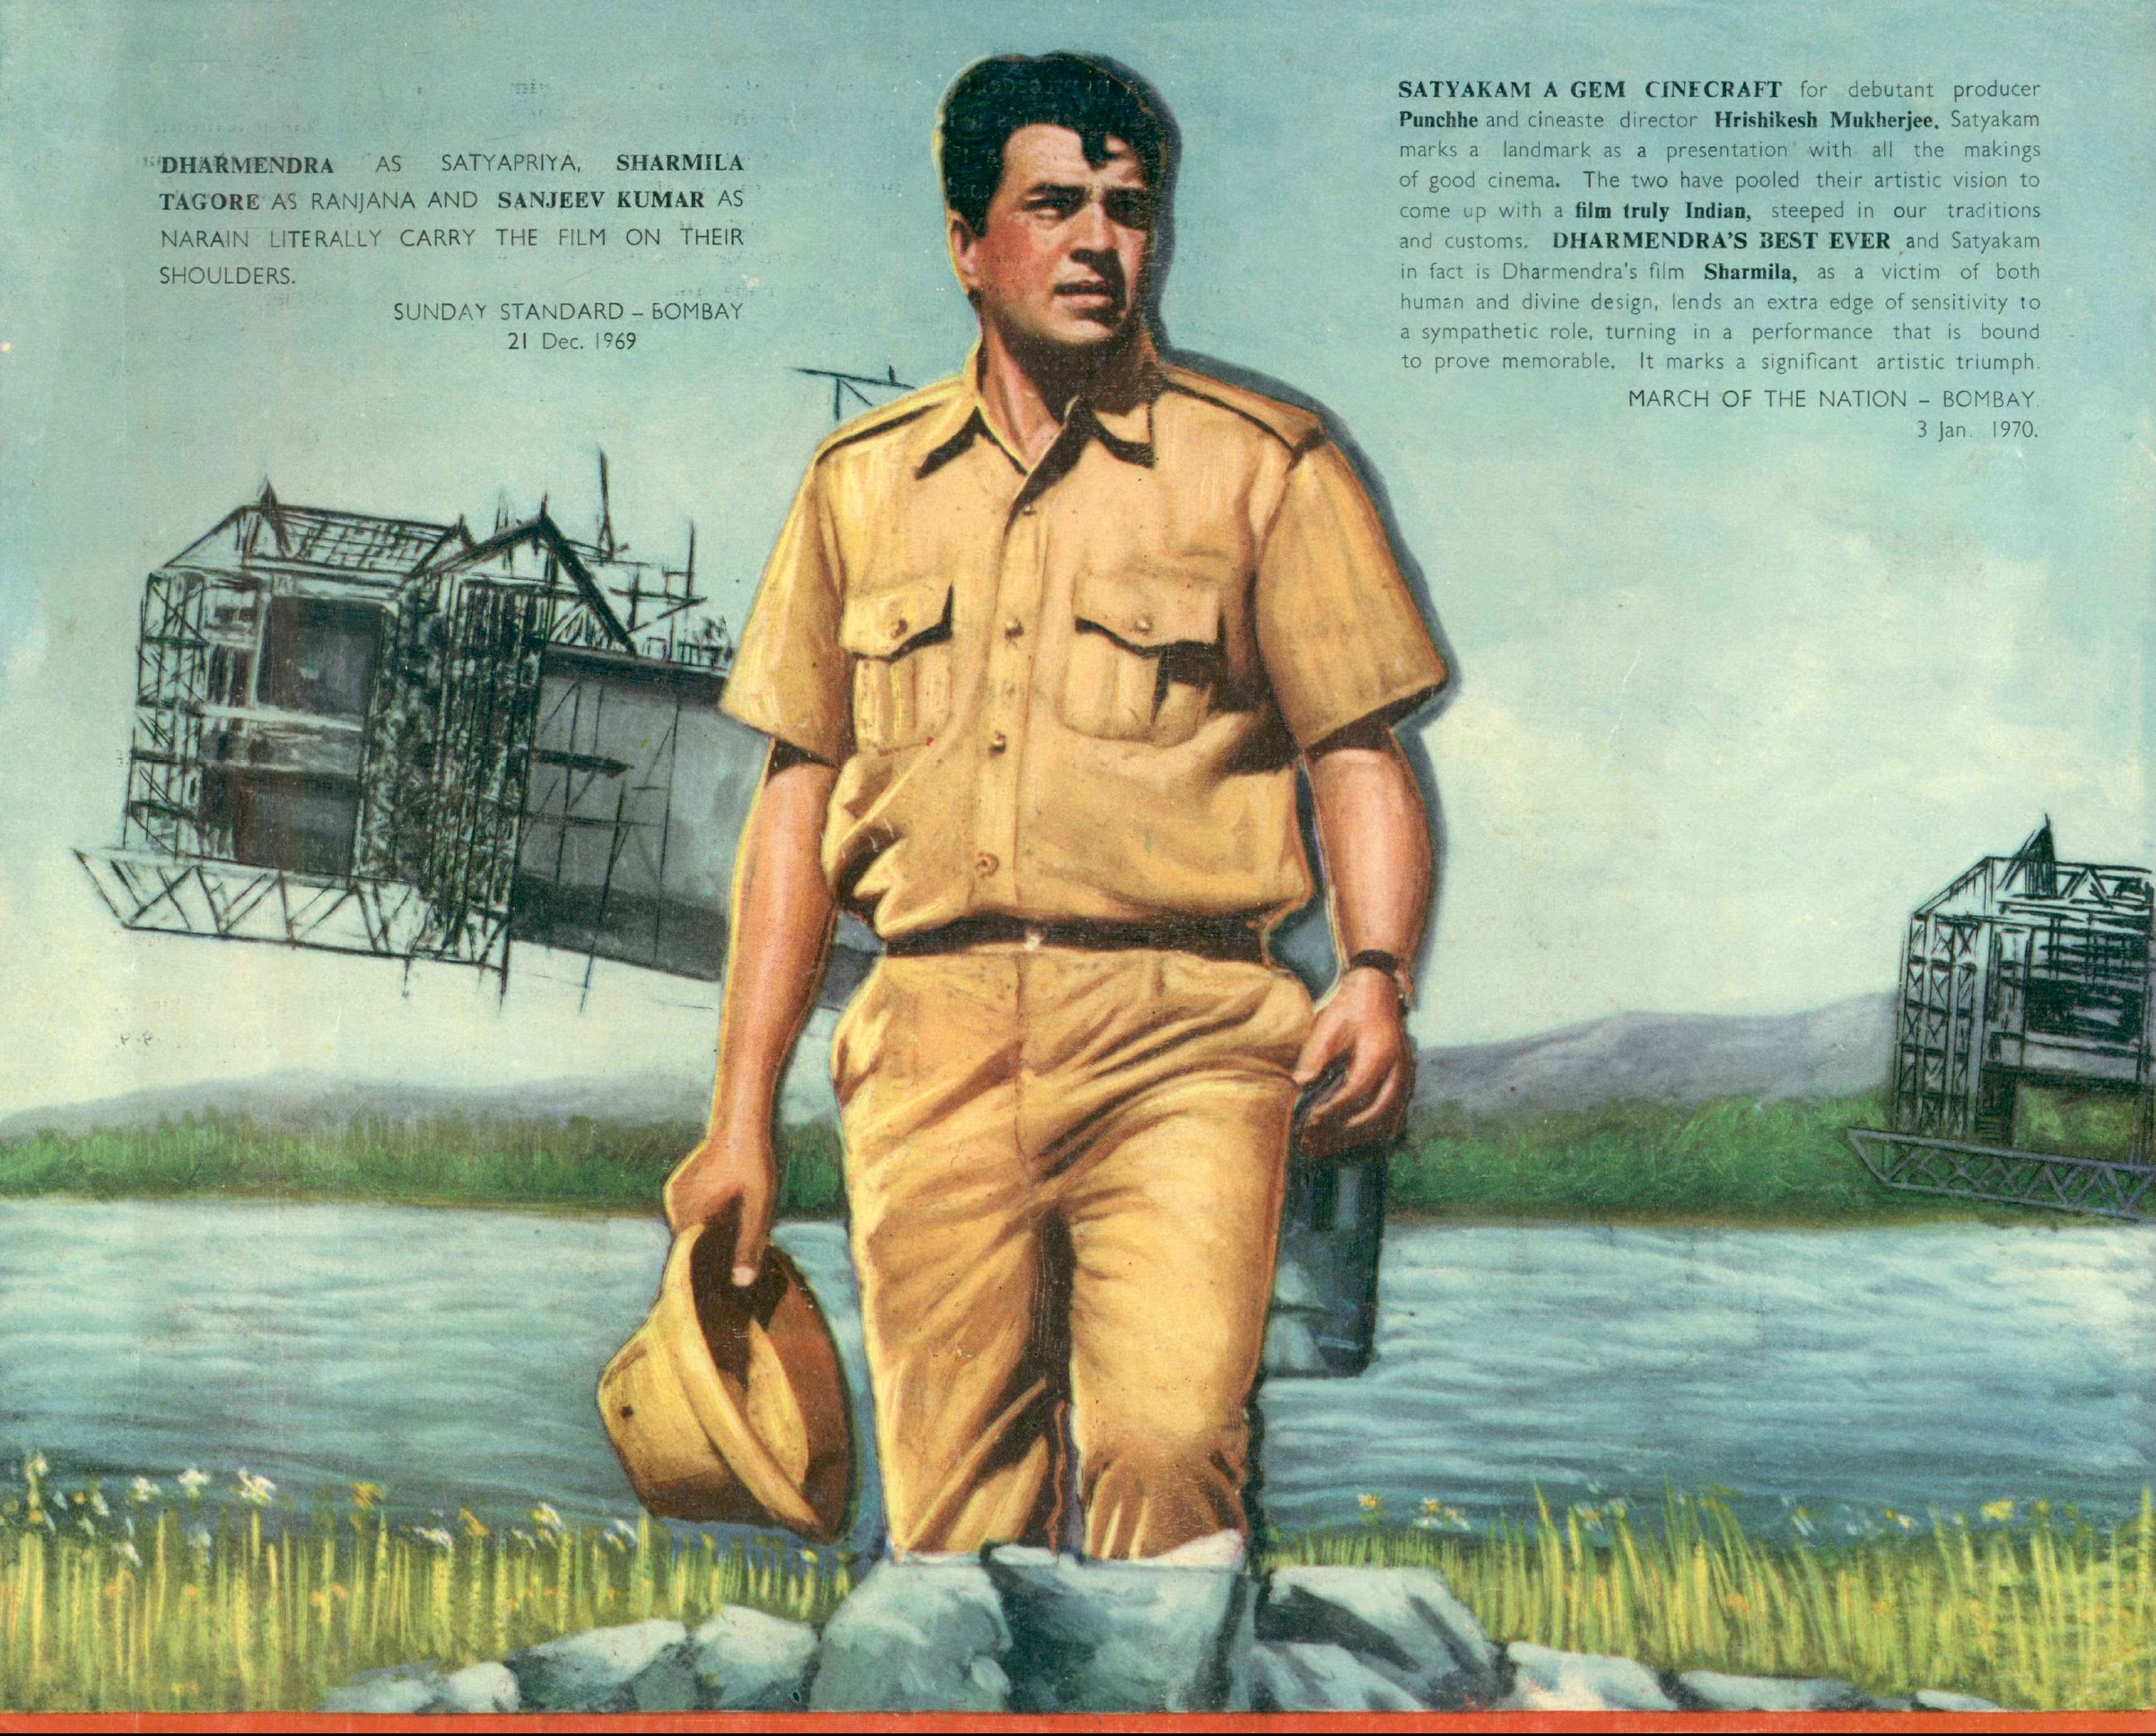 Satyakam: Hrishikesh Mukherjee's favourite film turns 50